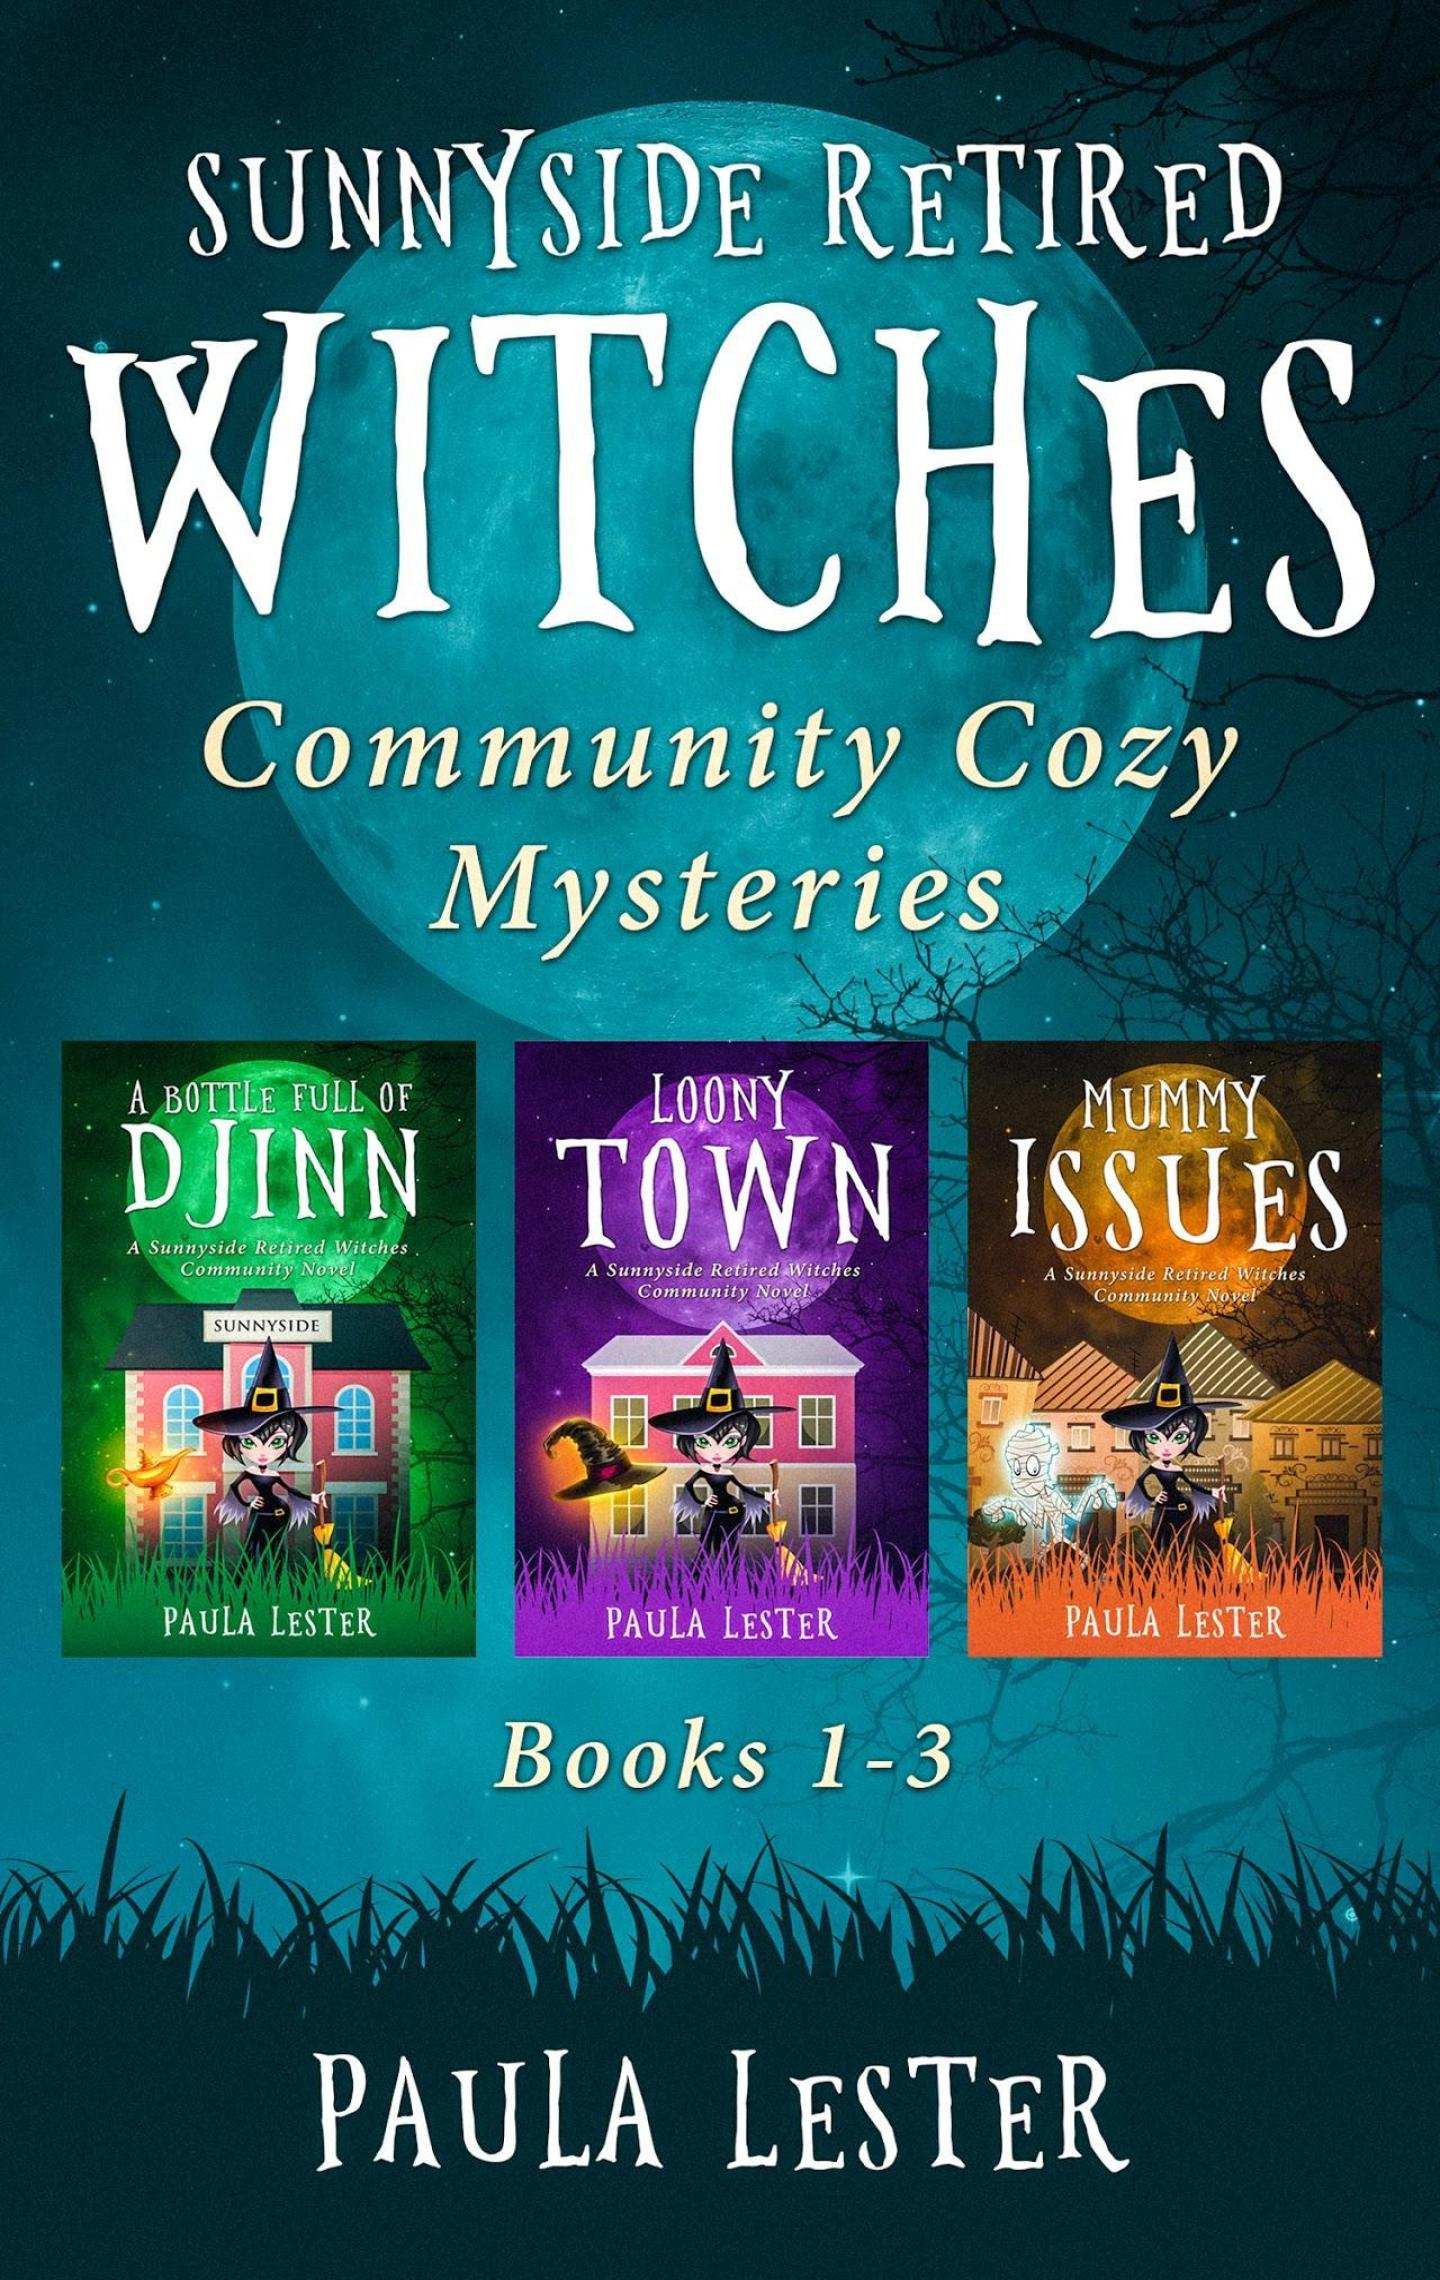 Sunnyside Retired Witches Community Series Boxset 1